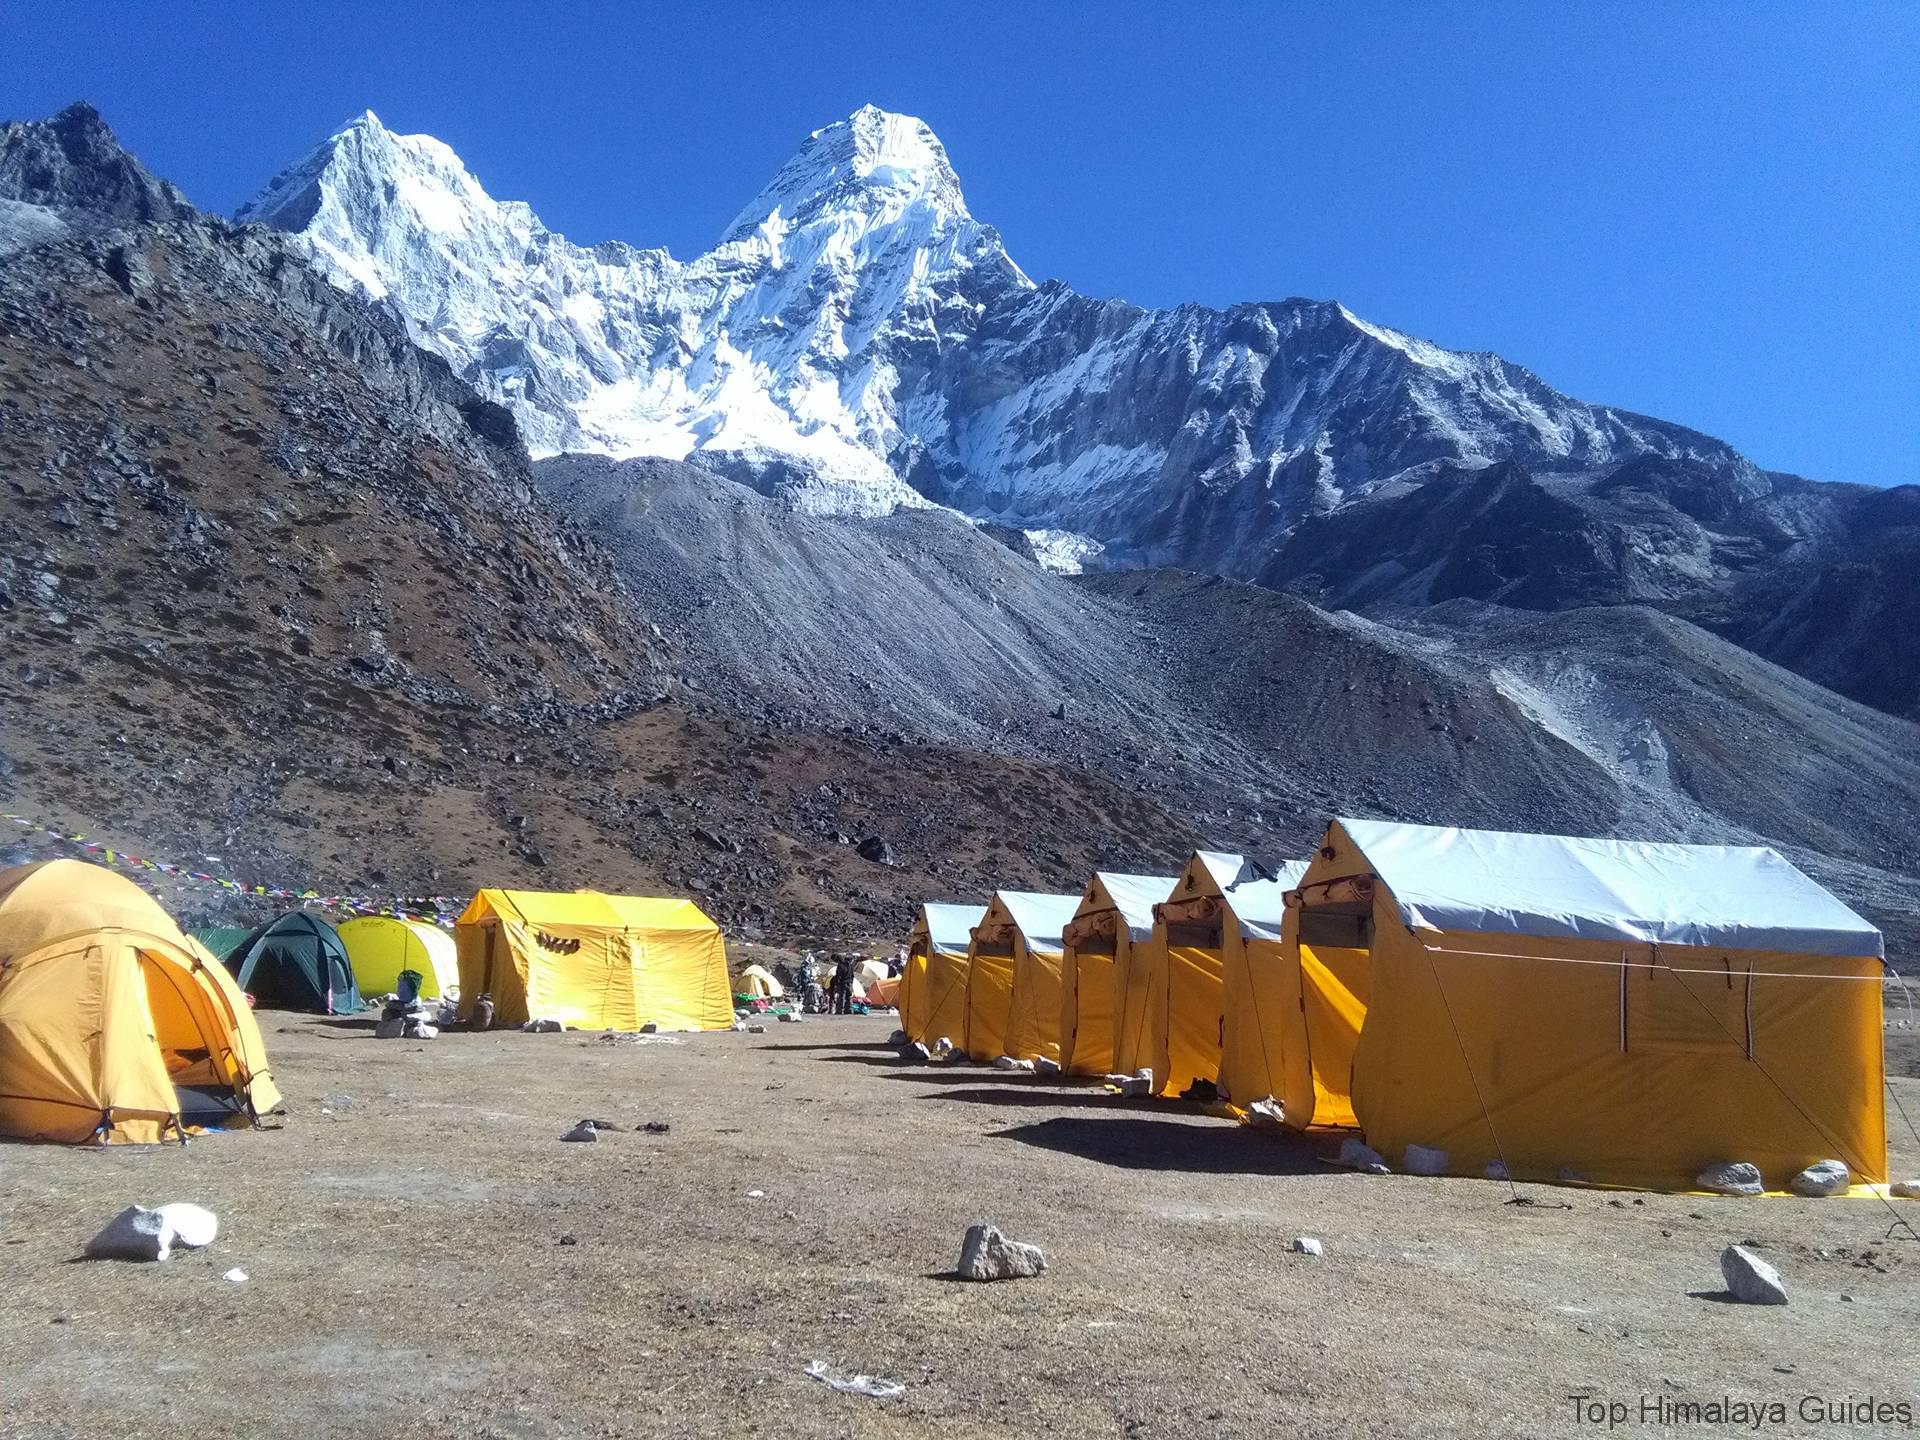 Top Himalaya Guides Mt. Ama Dablam climbing expedition 2016 base camp